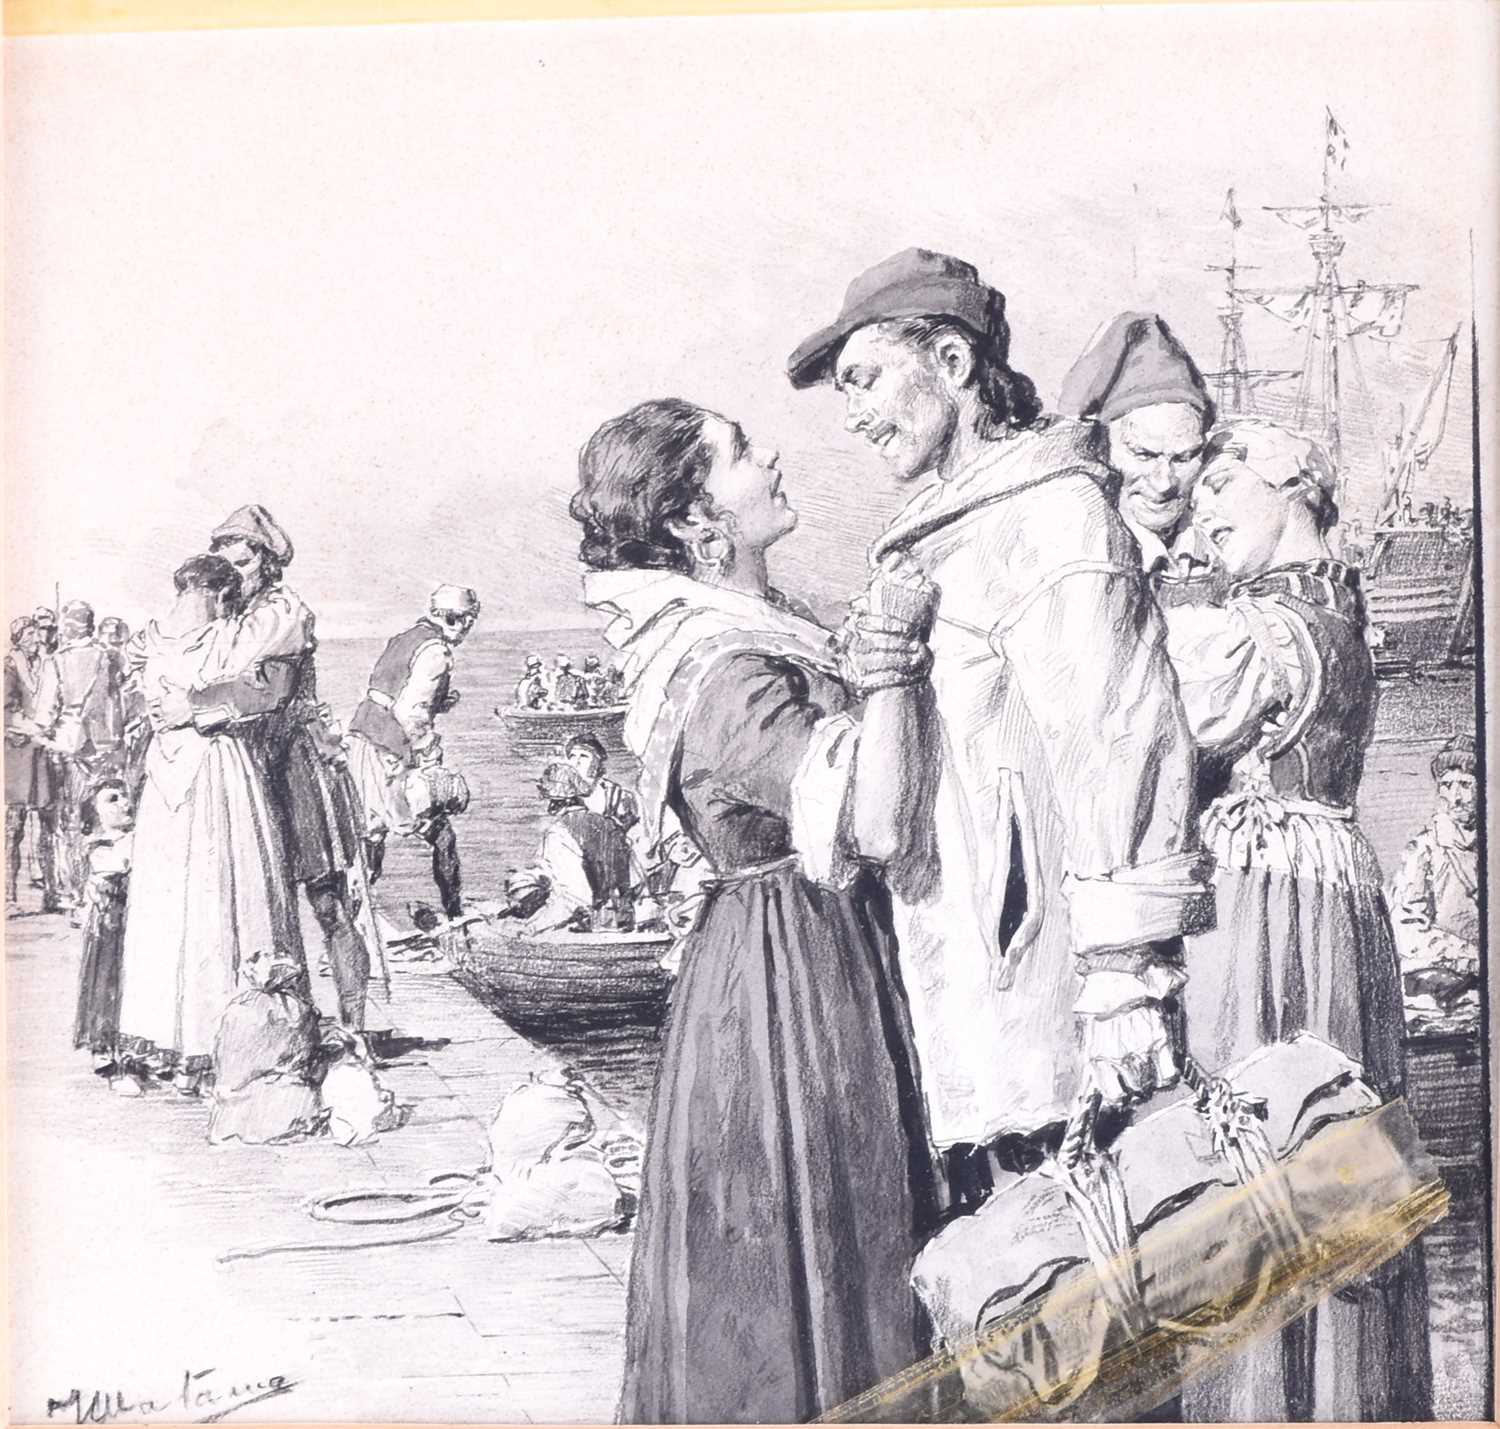 Lot 39 - Fortunino Matania (1881-1963) Italian, a group ink drawing of families by a dock inscribed 'Page